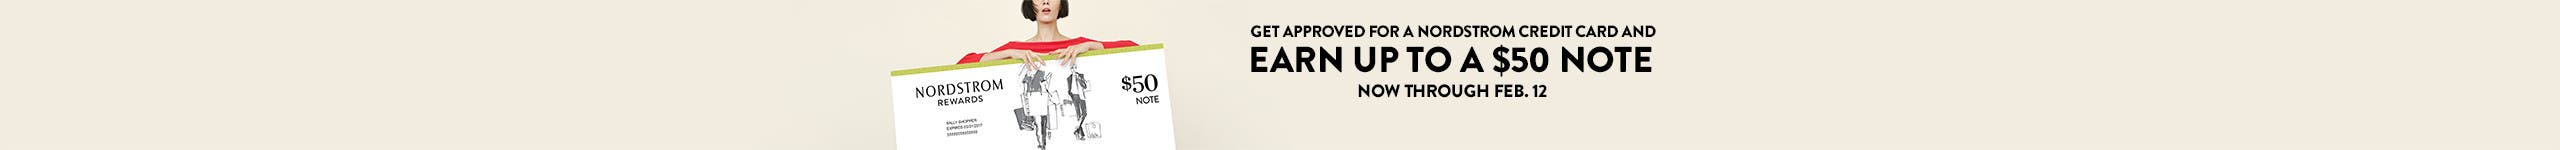 Earn up to a $50 Nordstrom Note when you get approved for a Nordstrom credit card by Feb. 12. Learn more.